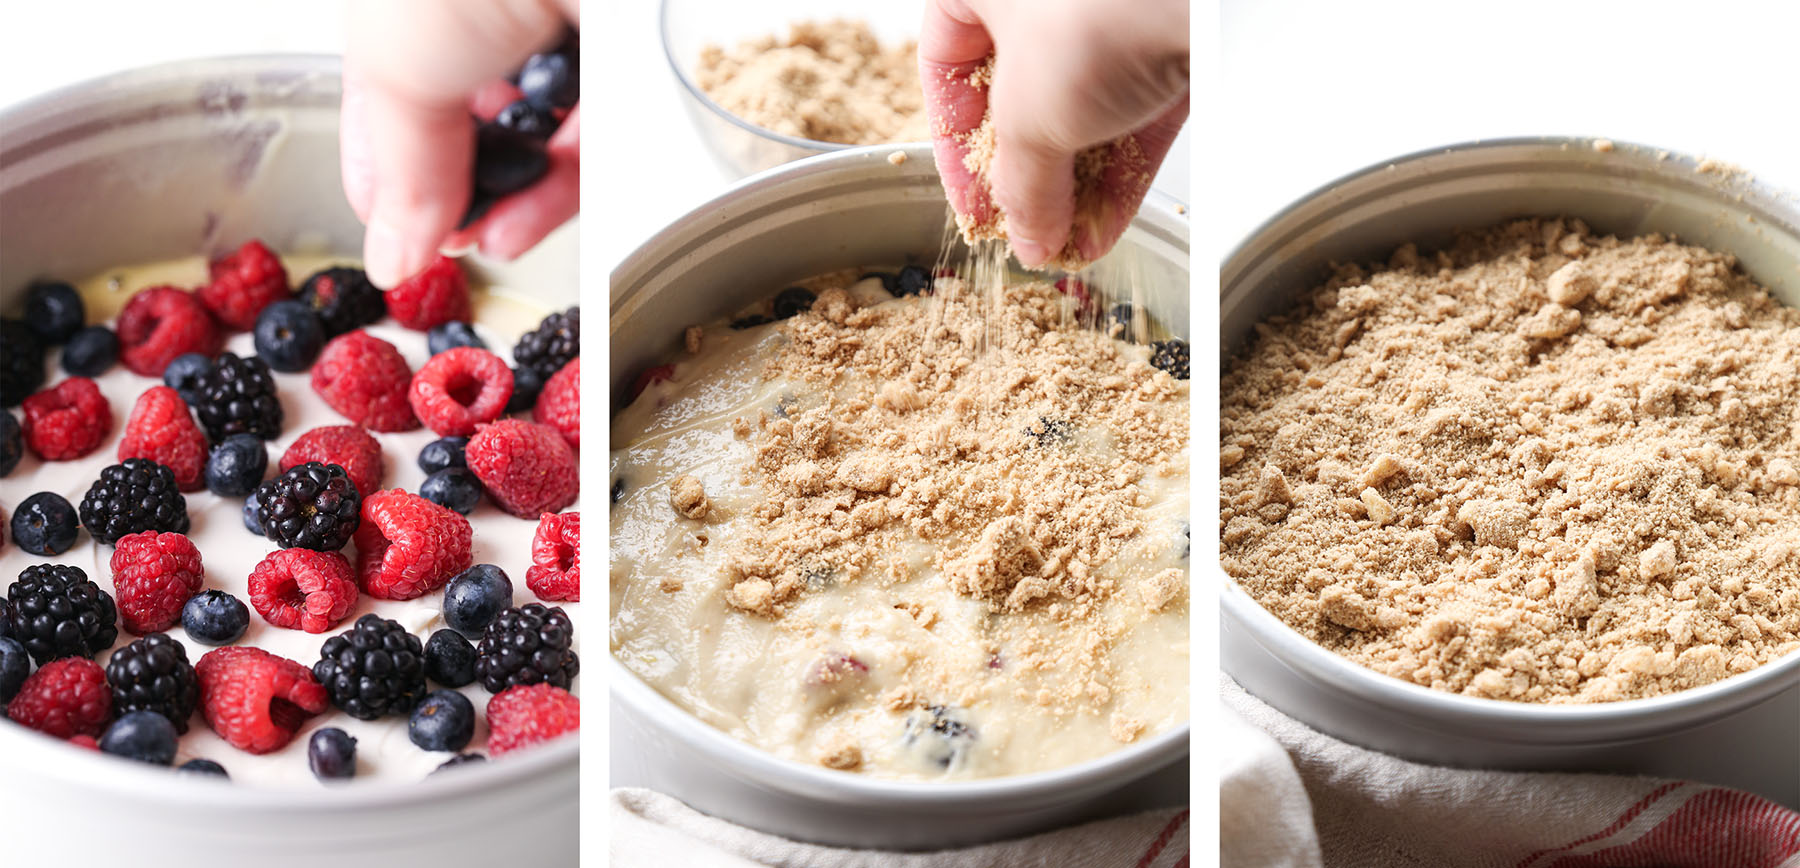 Berry Cream Cheese Coffee Cake Step by Step adding berries and crumb topping